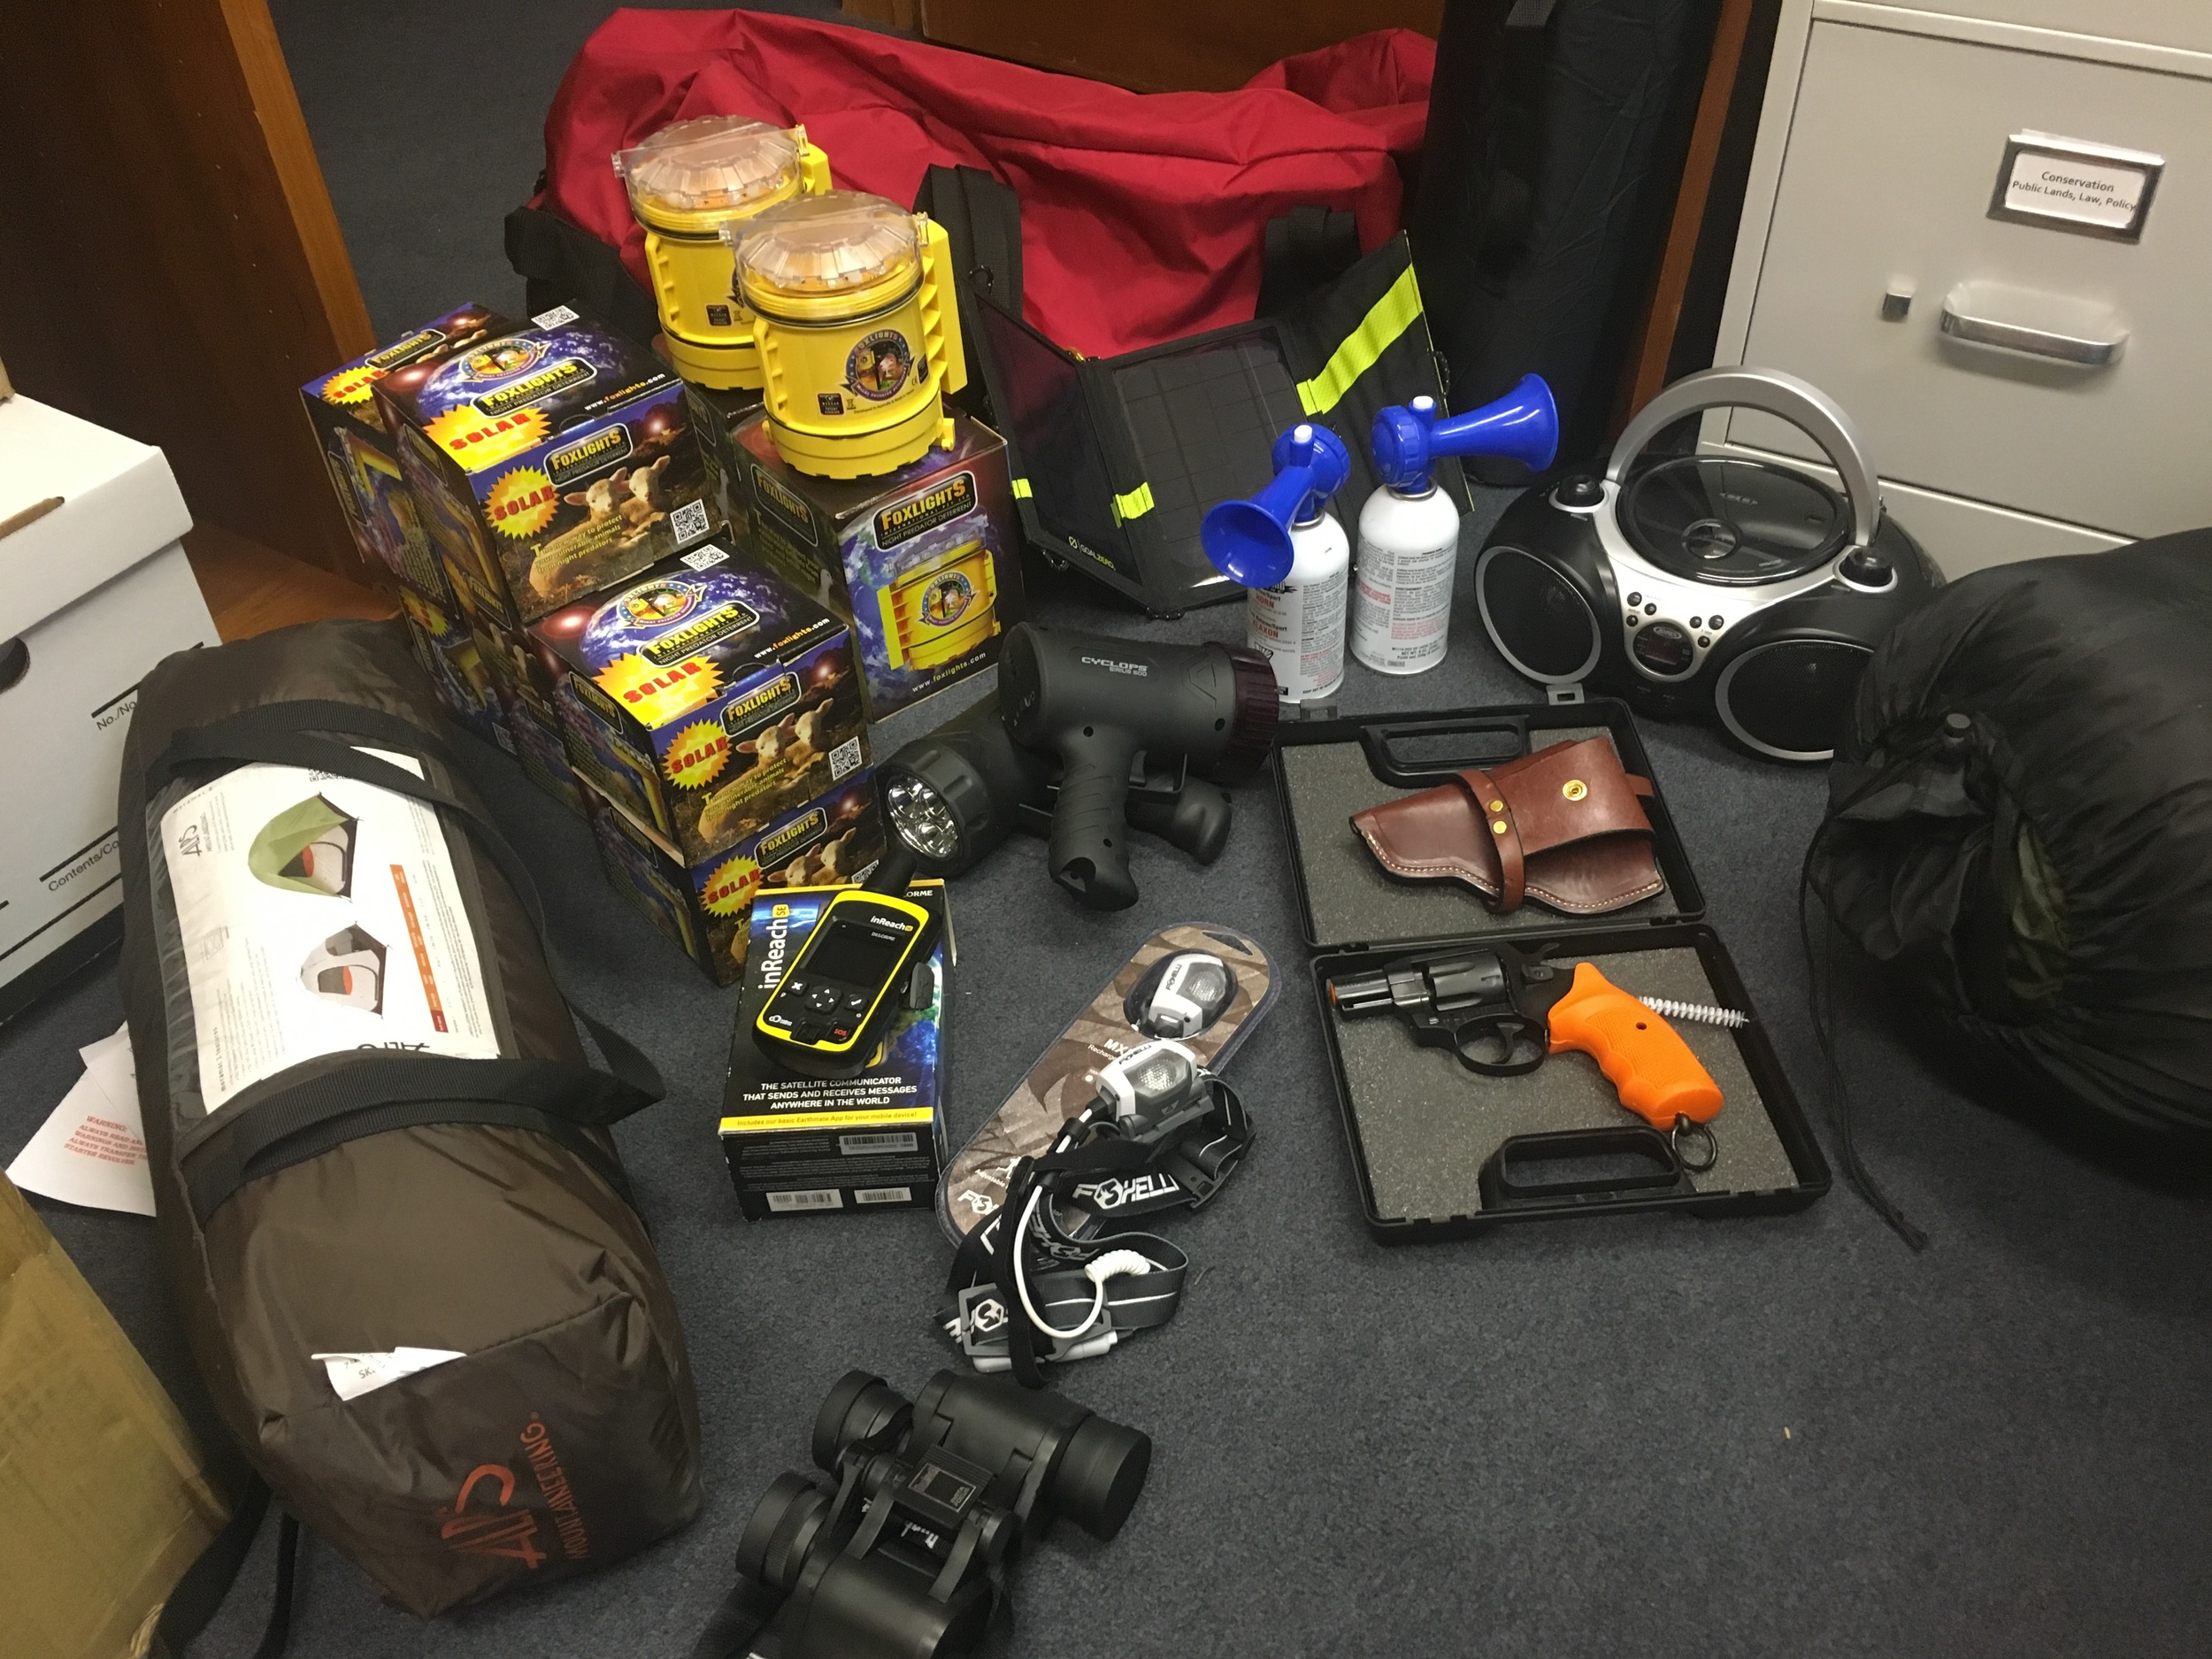 Contents of the Wood River Wolf Project Band Kits. Photo: Avery Shawler